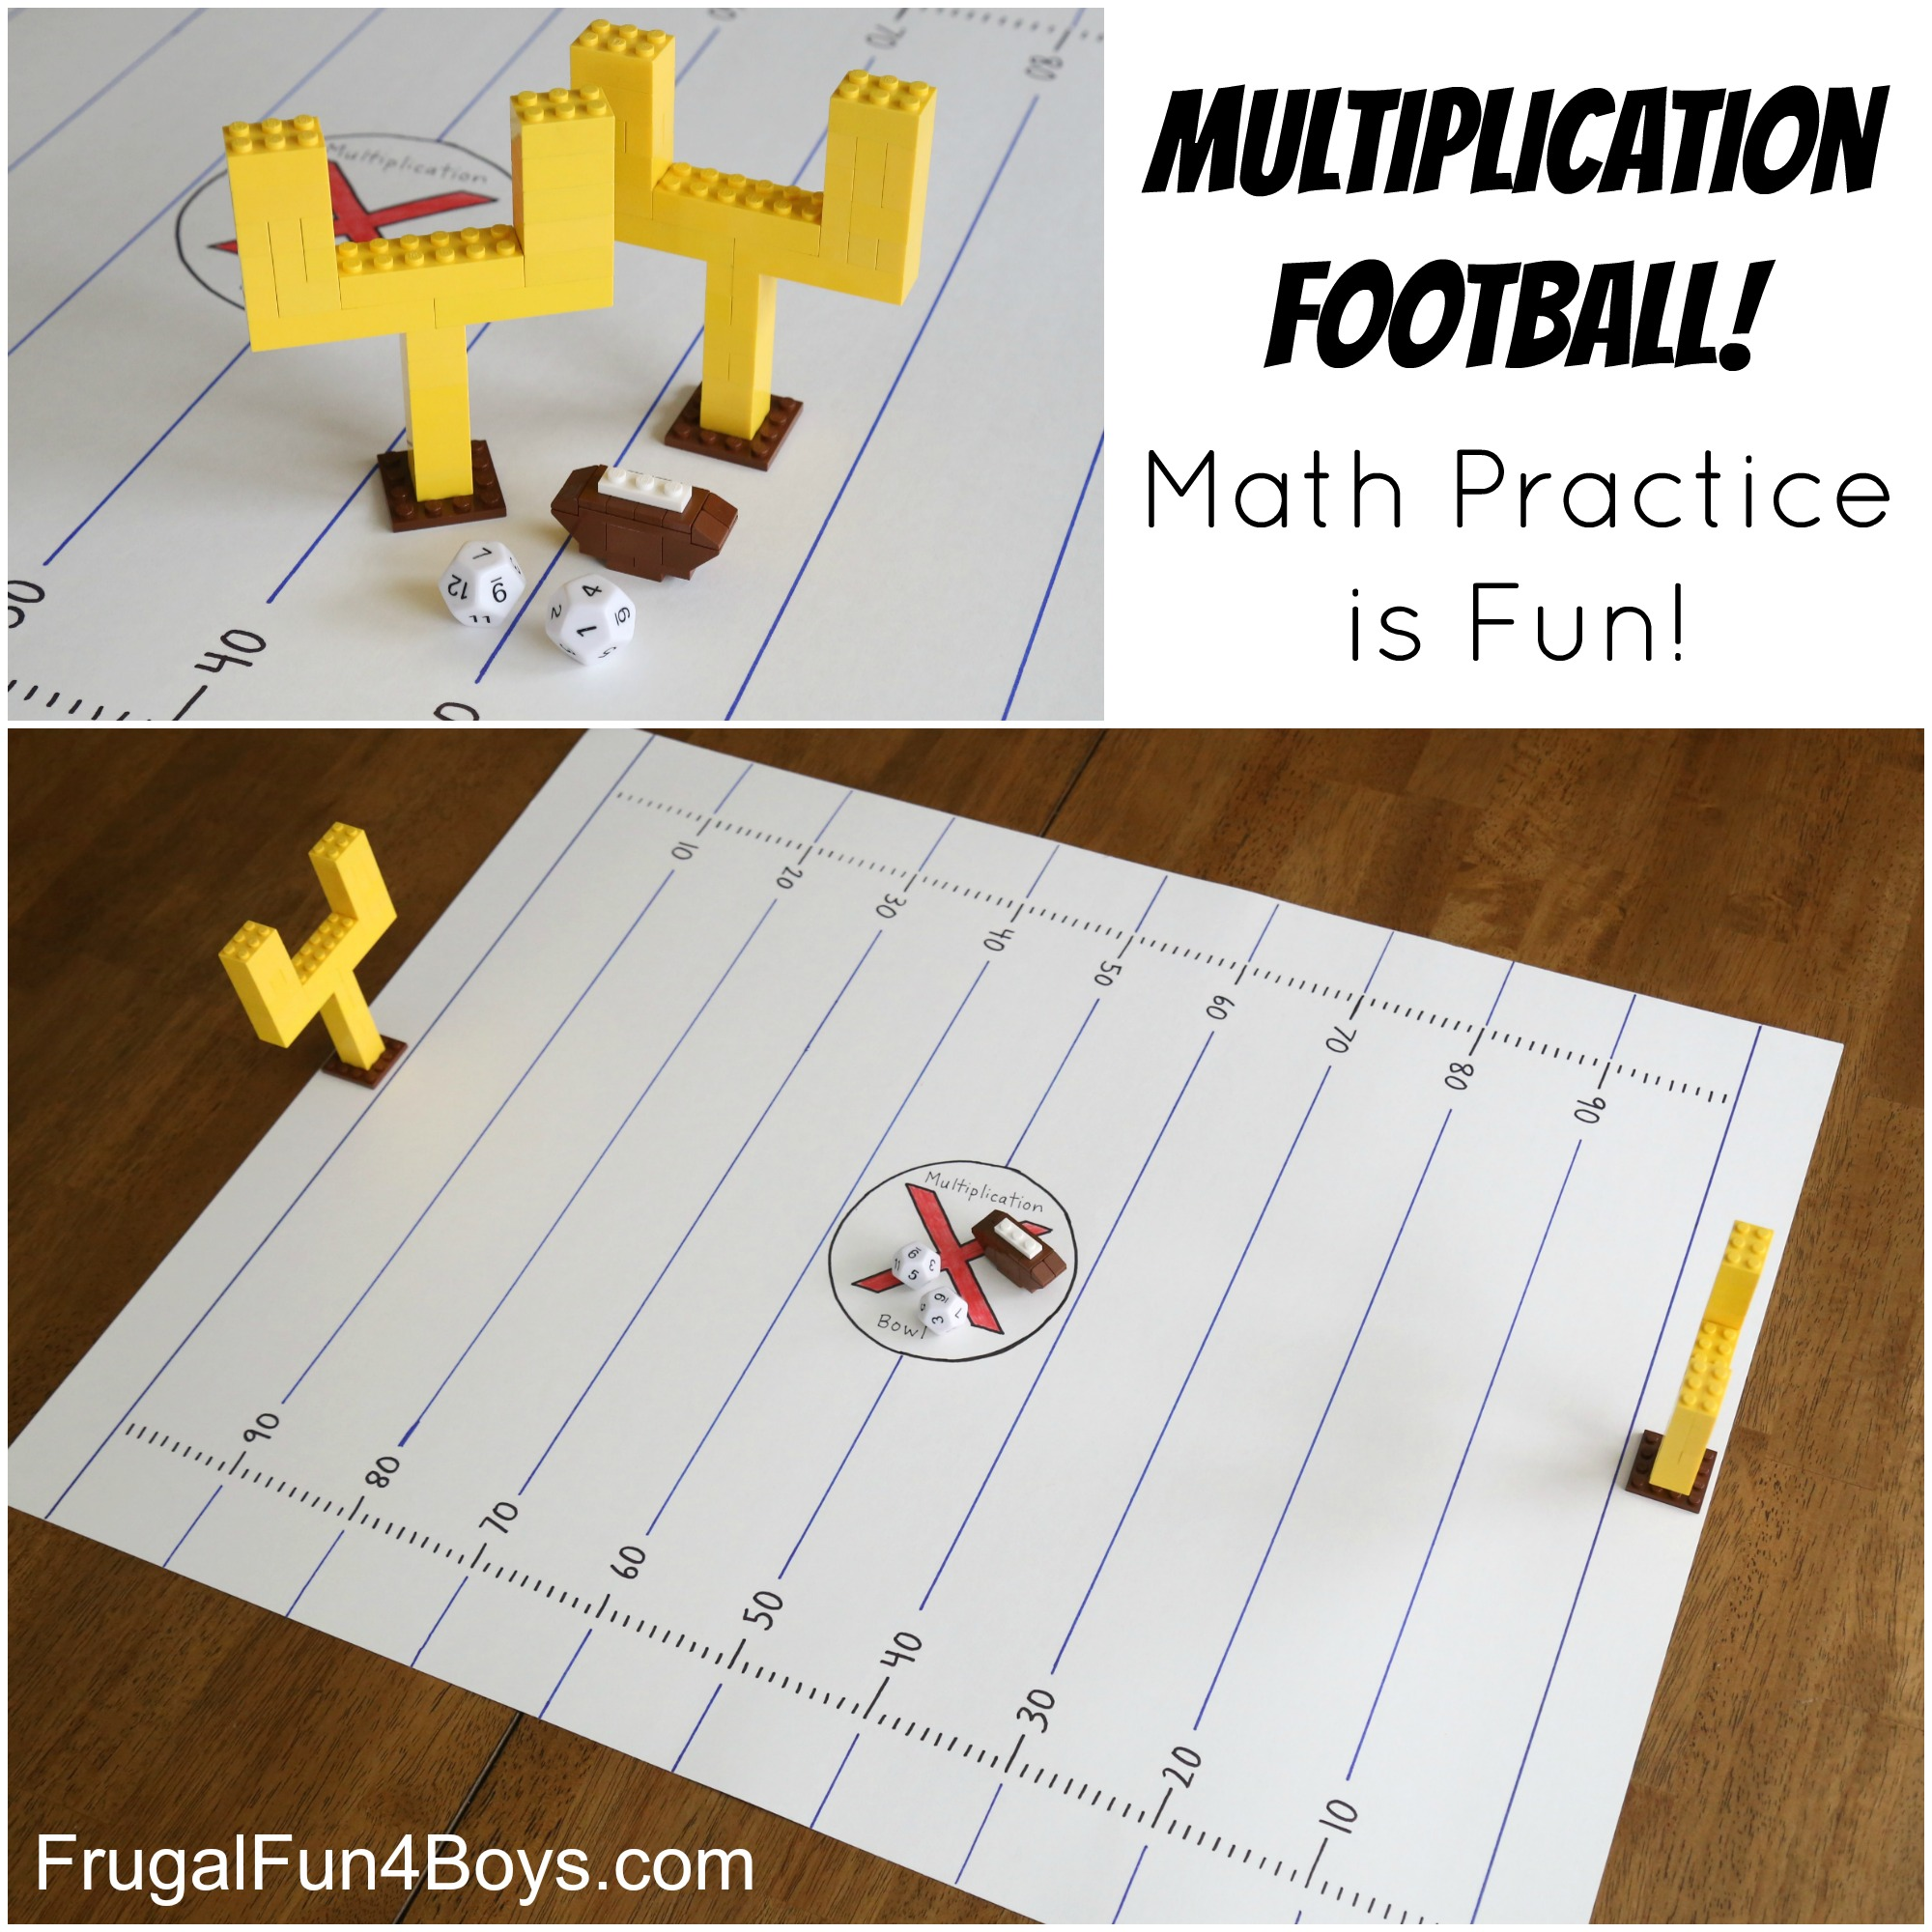 Multiplication Football Math Game for Kids!